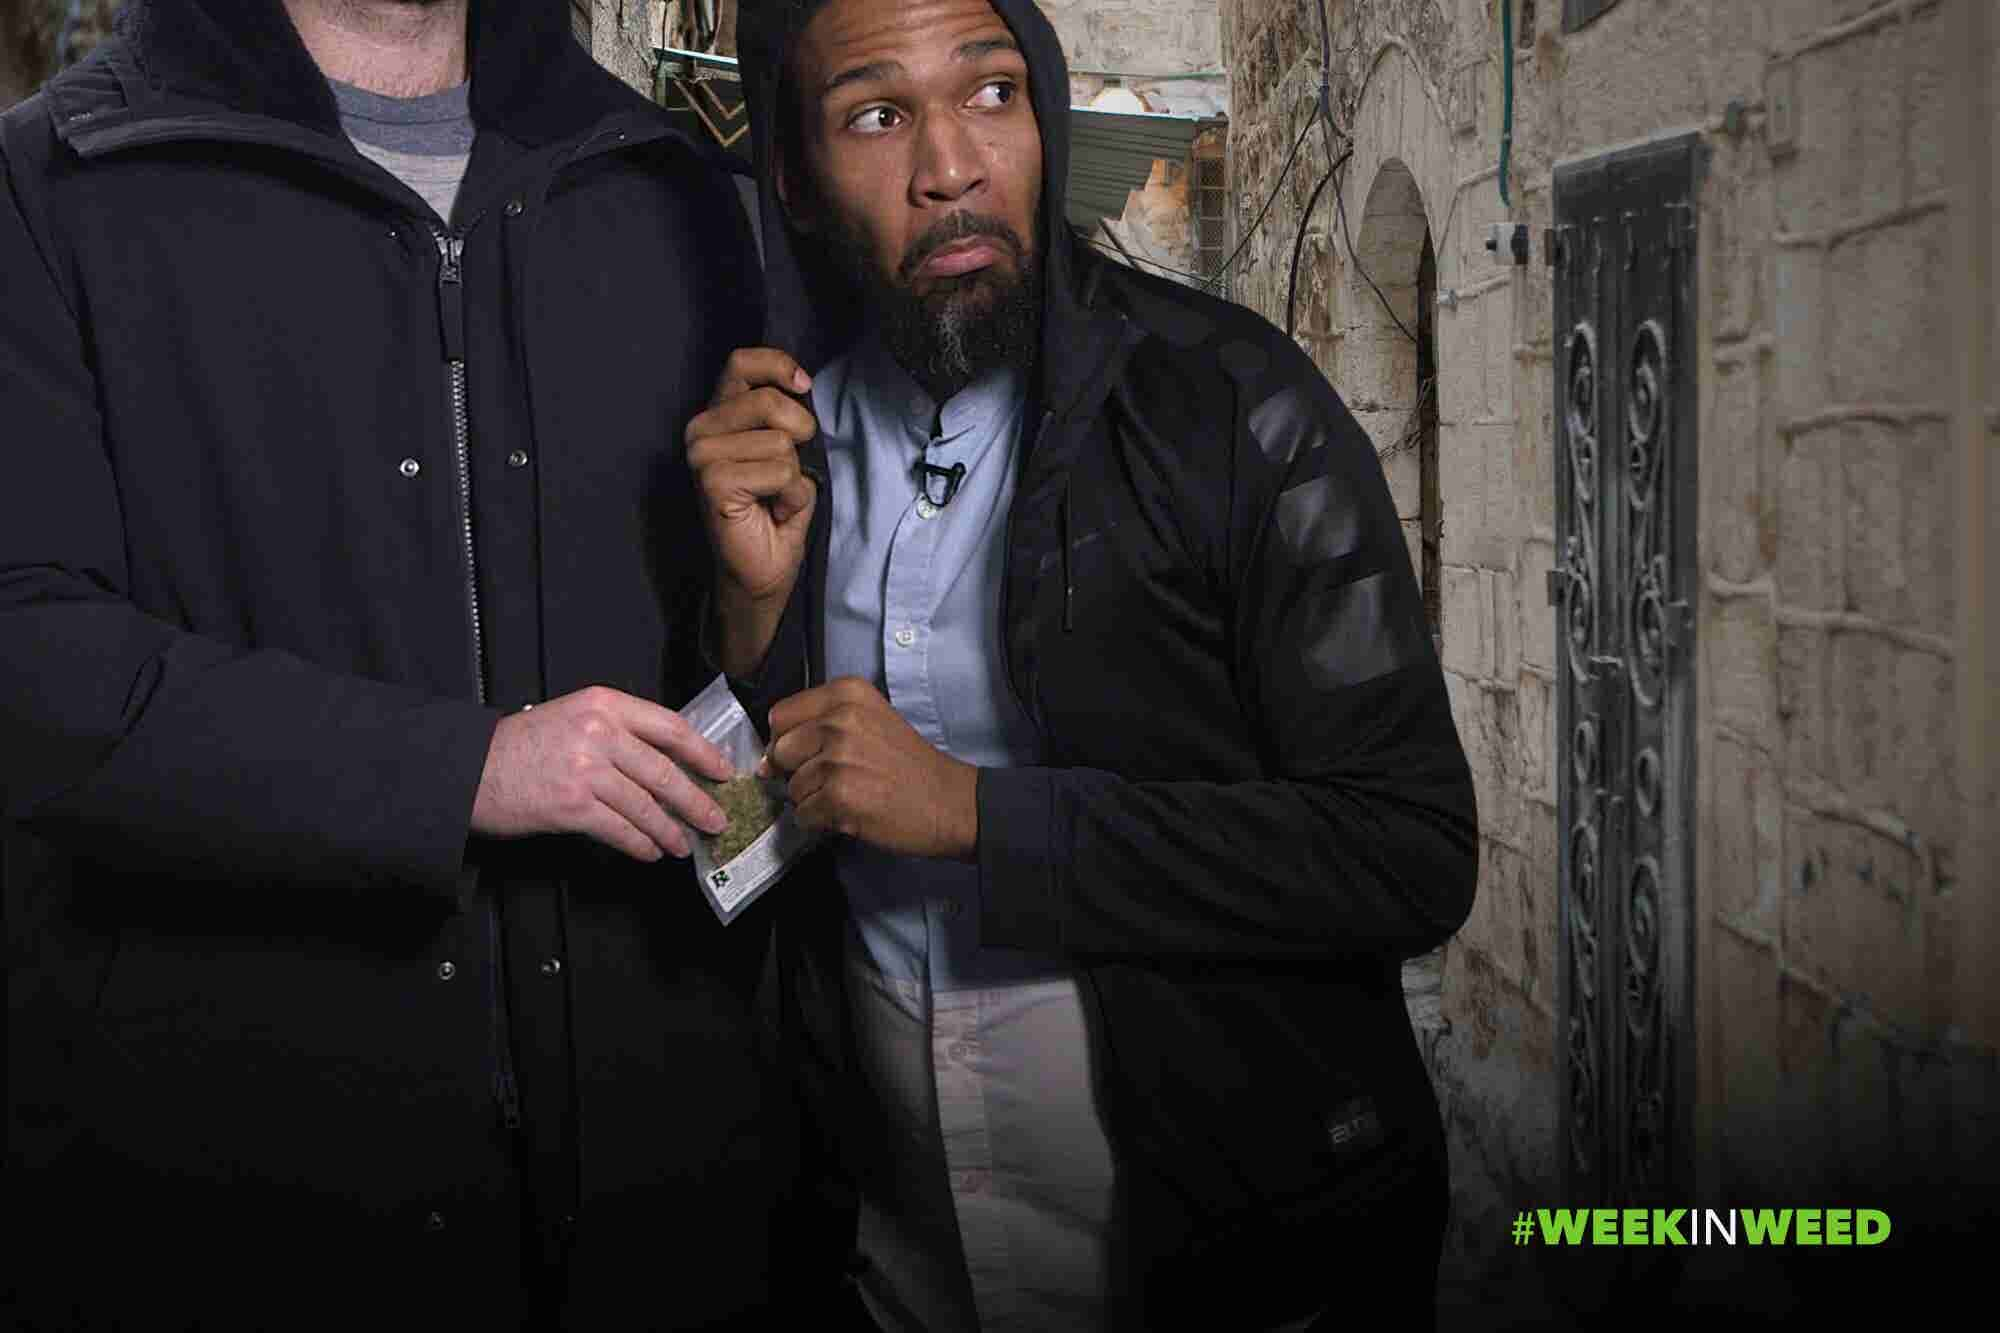 This Week in Weed: Can The Black Market Be Stopped?